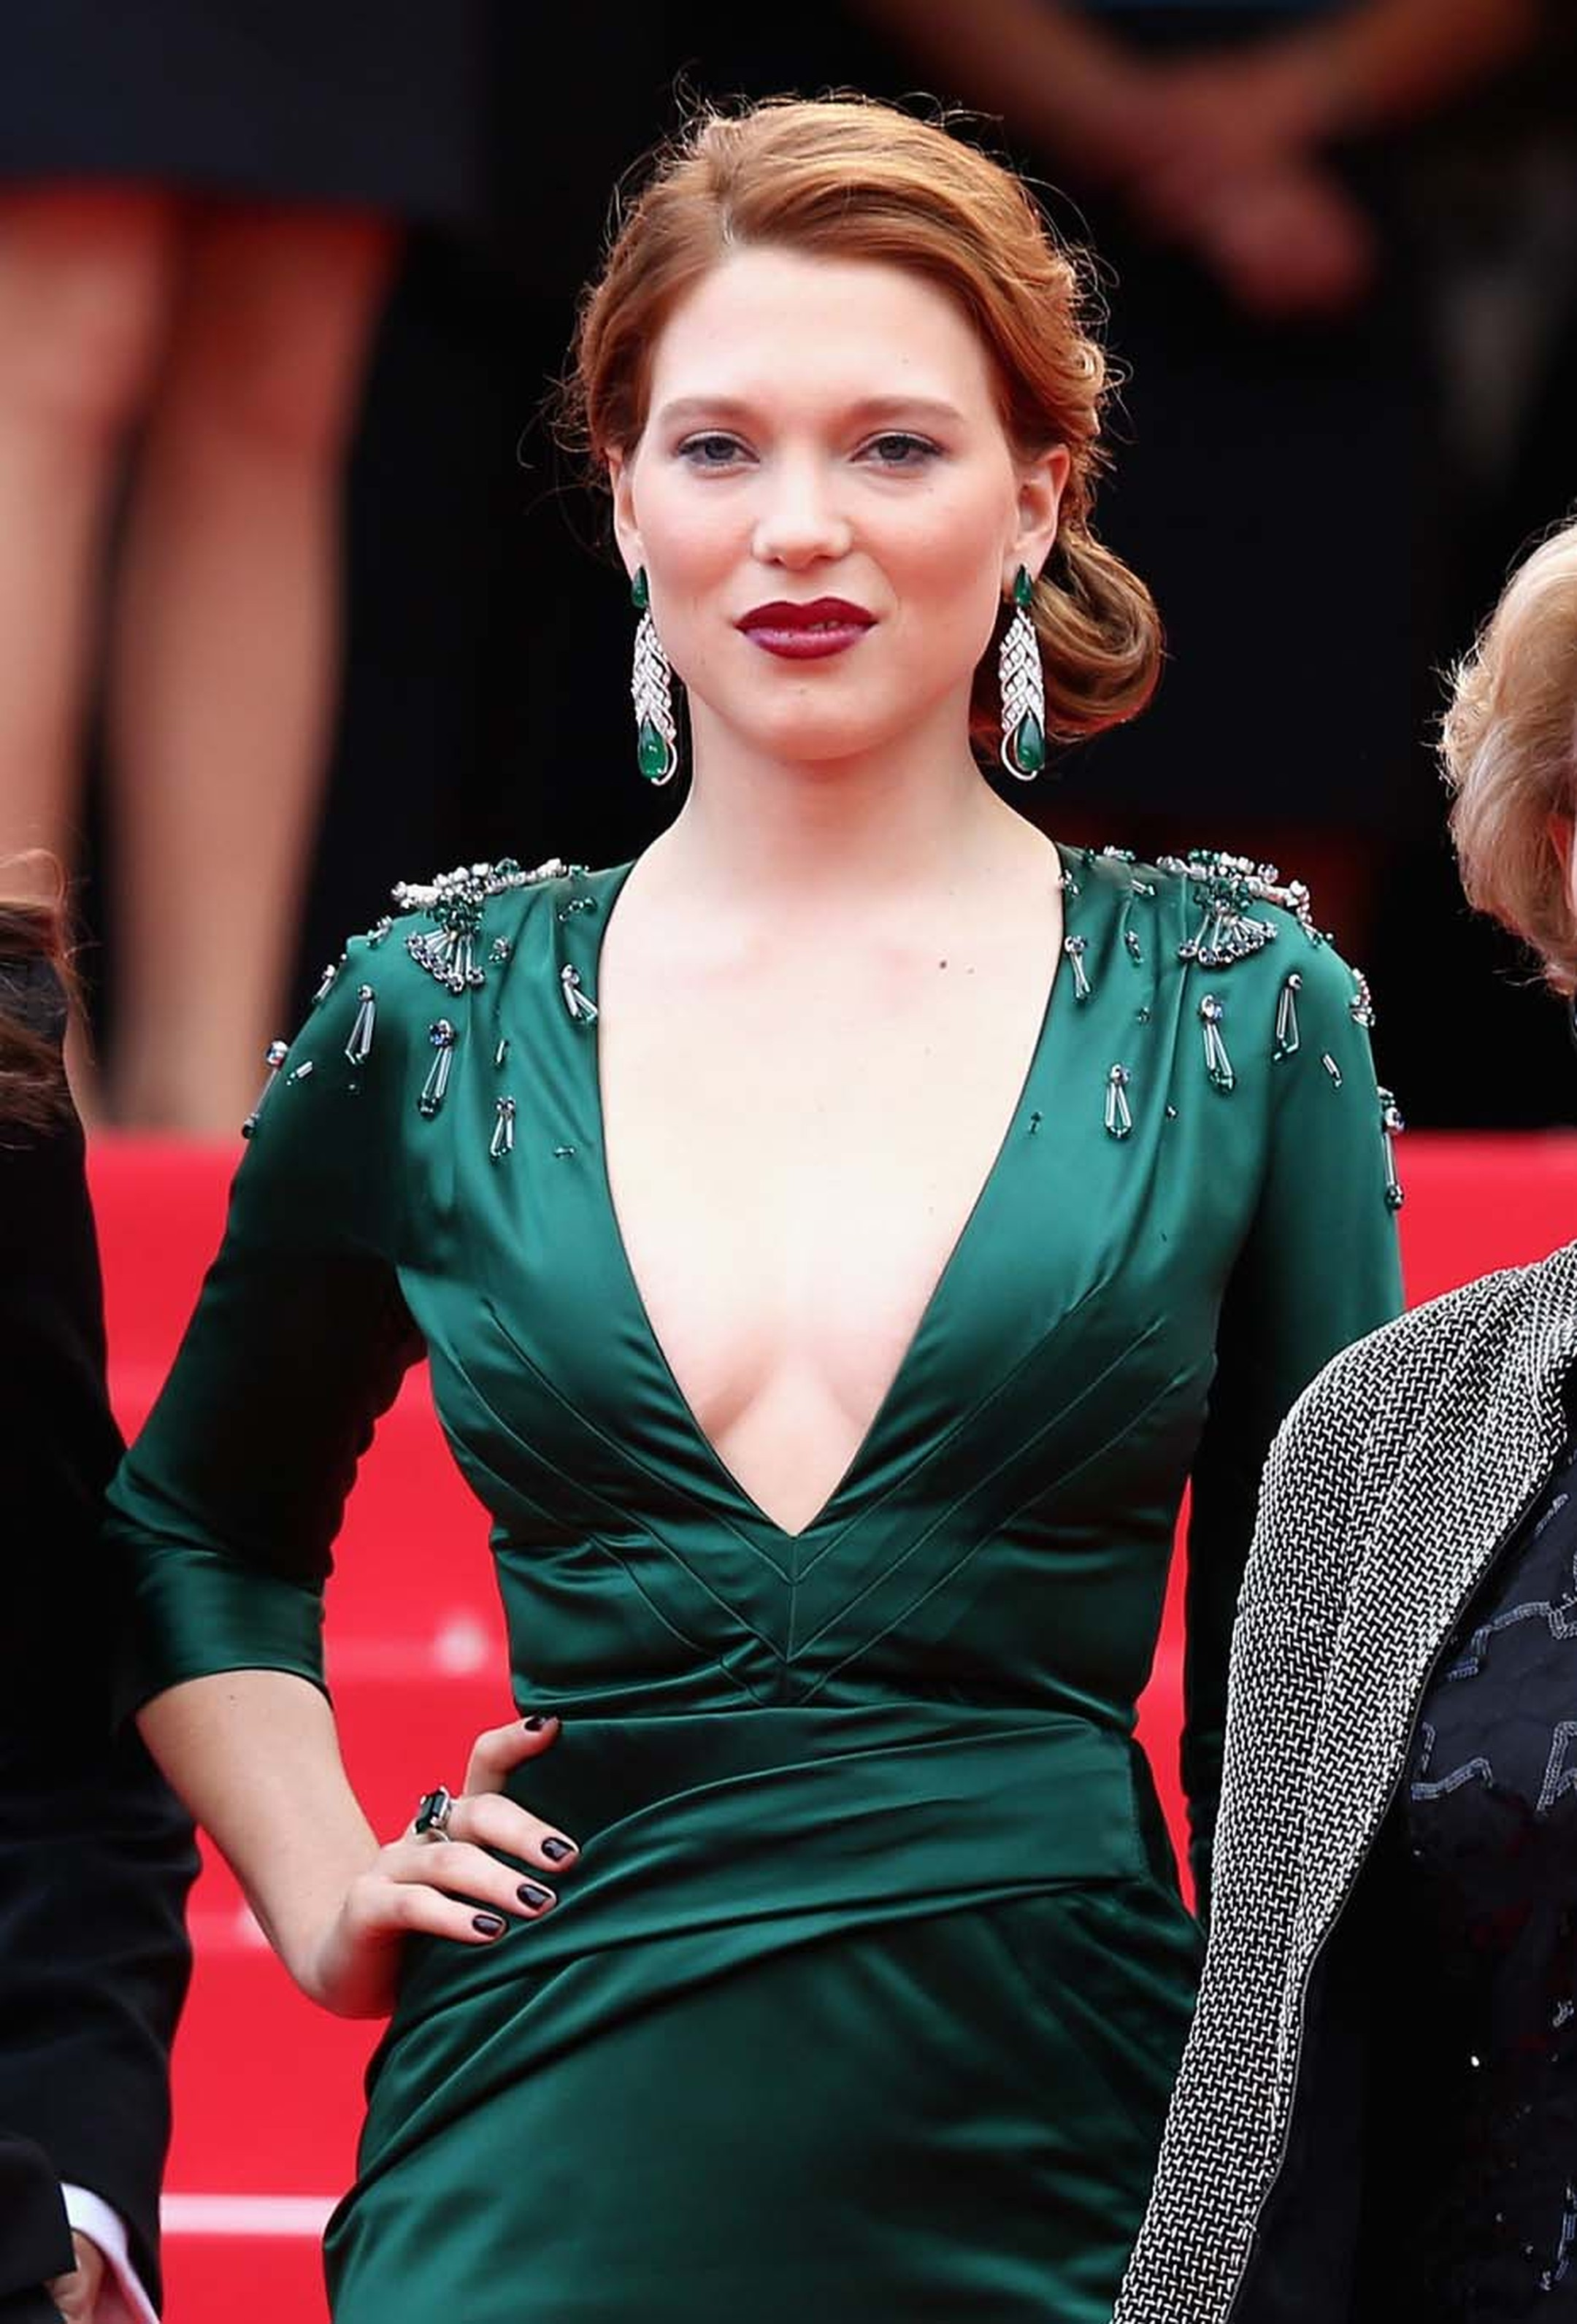 Léa Seydoux was a showstopper in her Prada gown and jewels by Chopard: earrings featuring 39ct of pear-shaped emeralds and a 13.36ct octagonal-cut emerald ring.